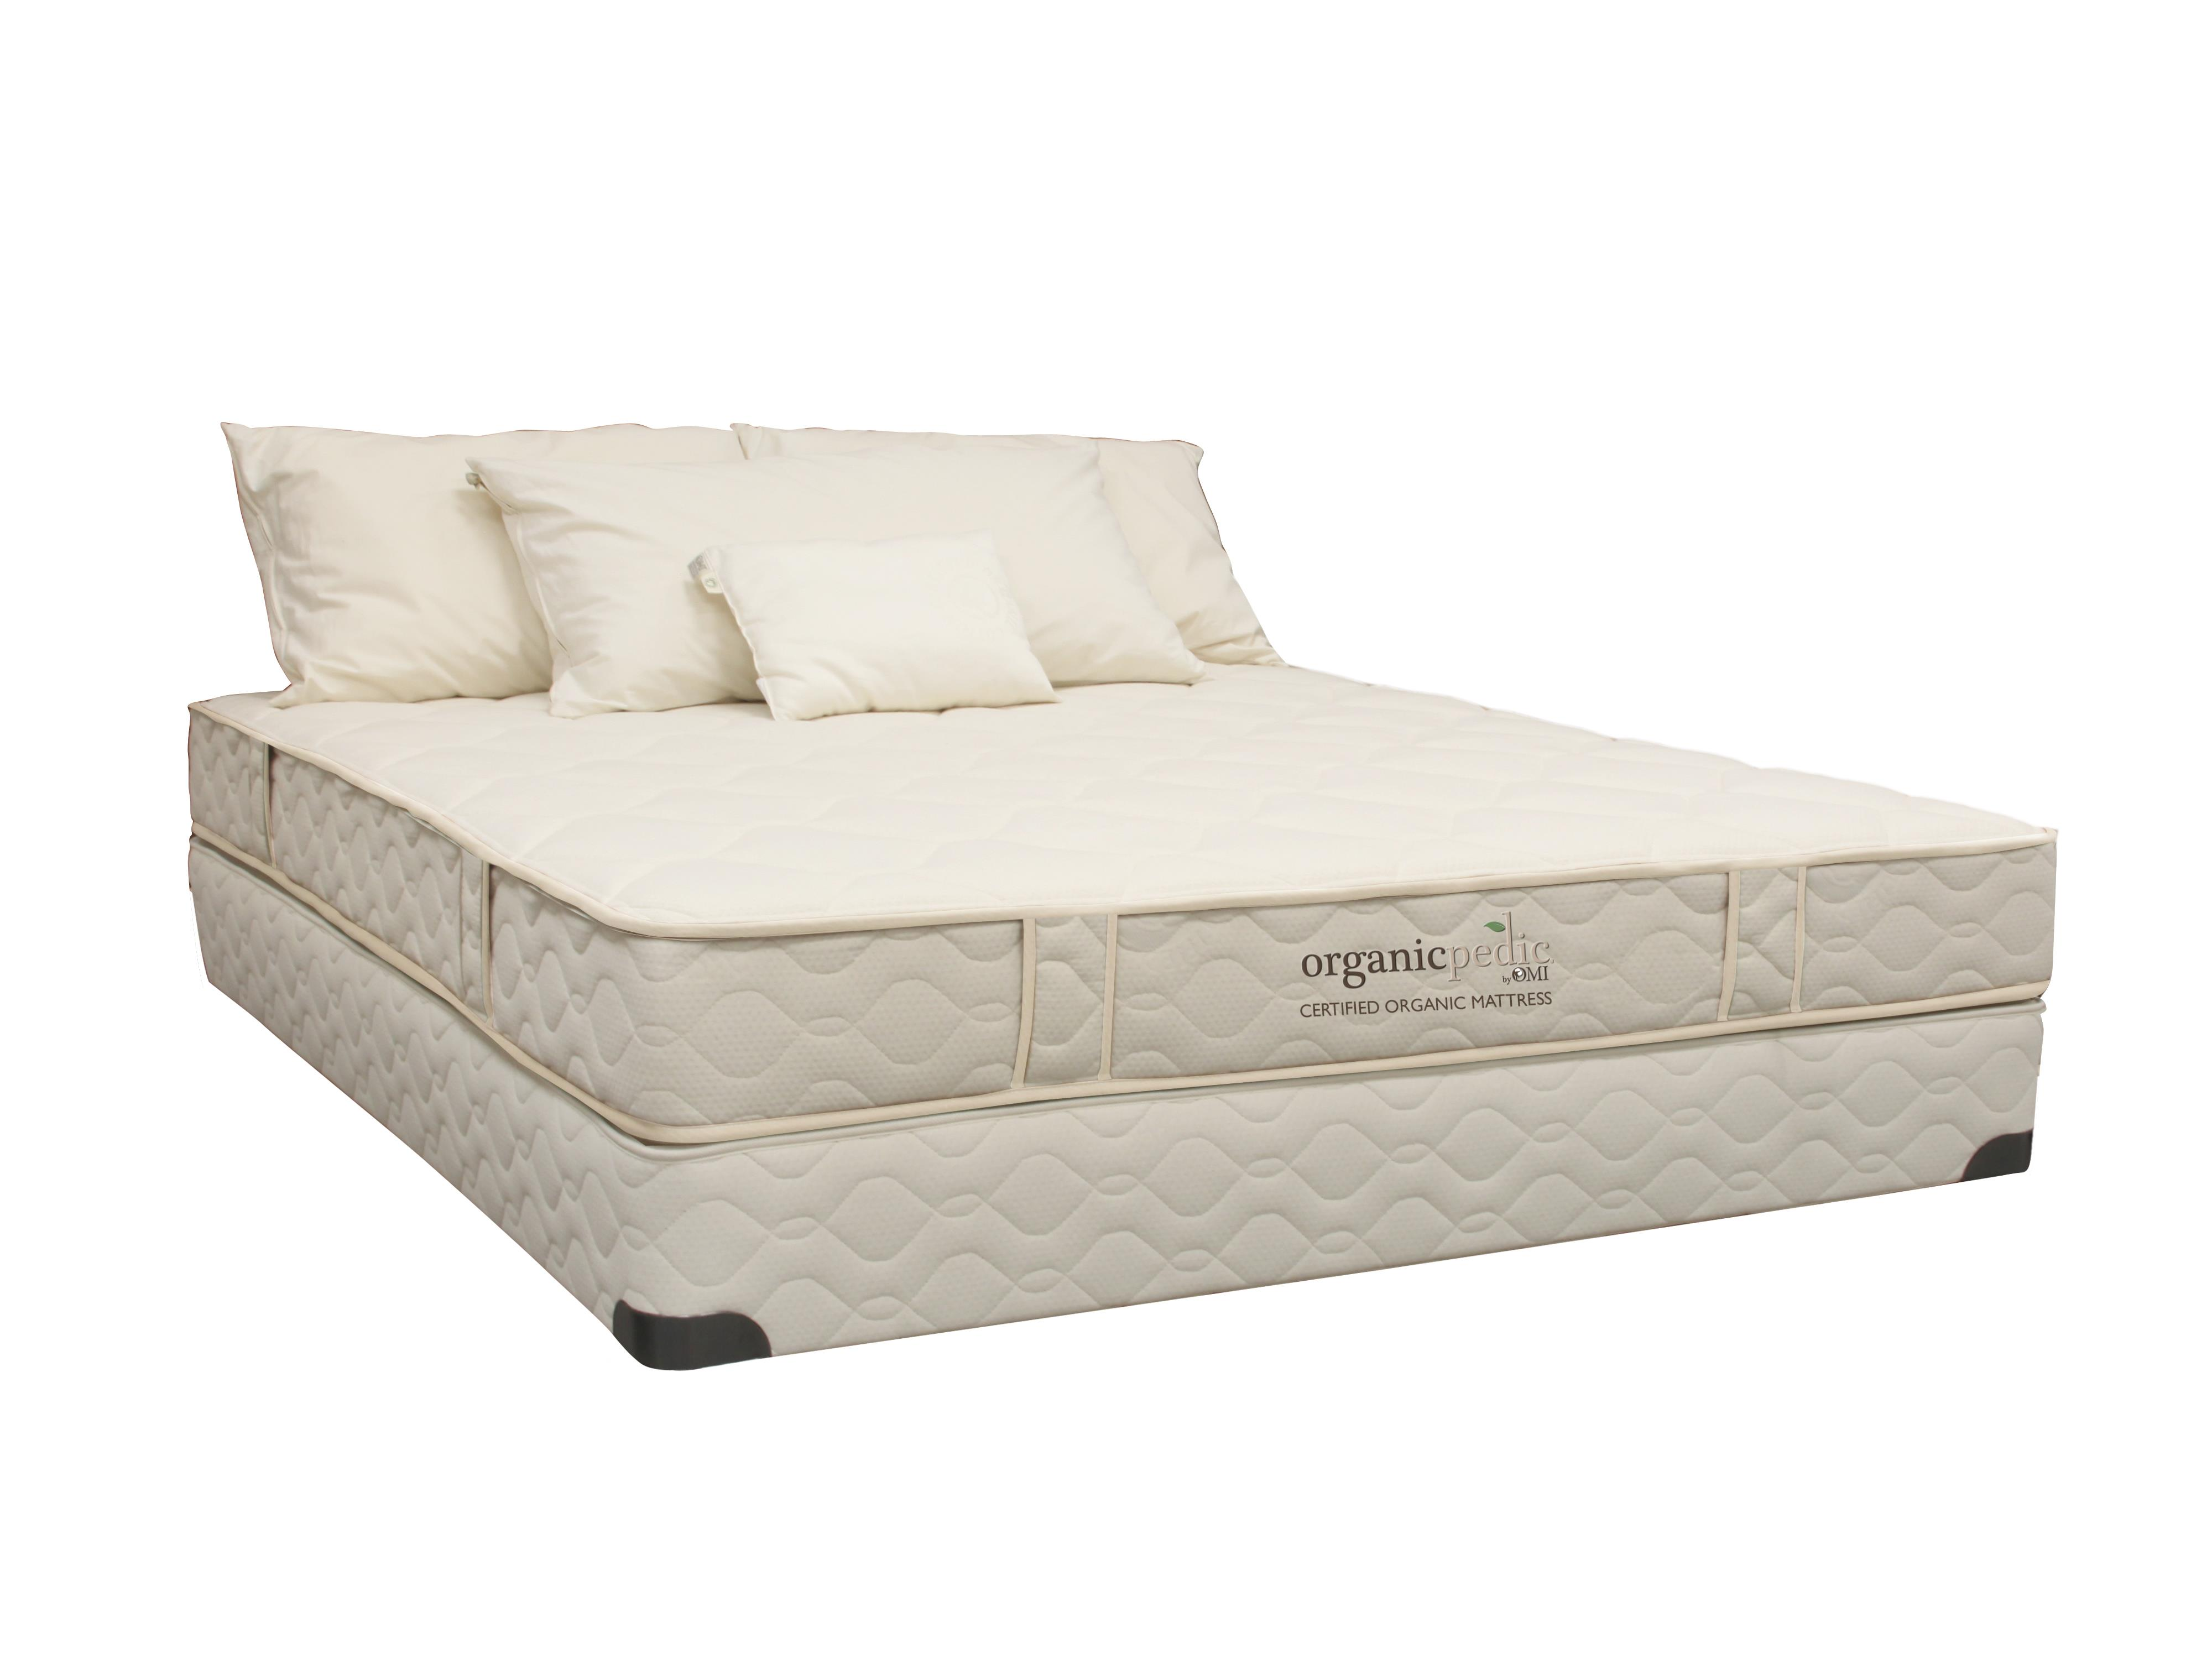 "Organic Mattresses, Inc. (OMI) OrganicPedic Cascade Queen 7.5"" Latex Mattress - Item Number: 50CASCADEO-2N"